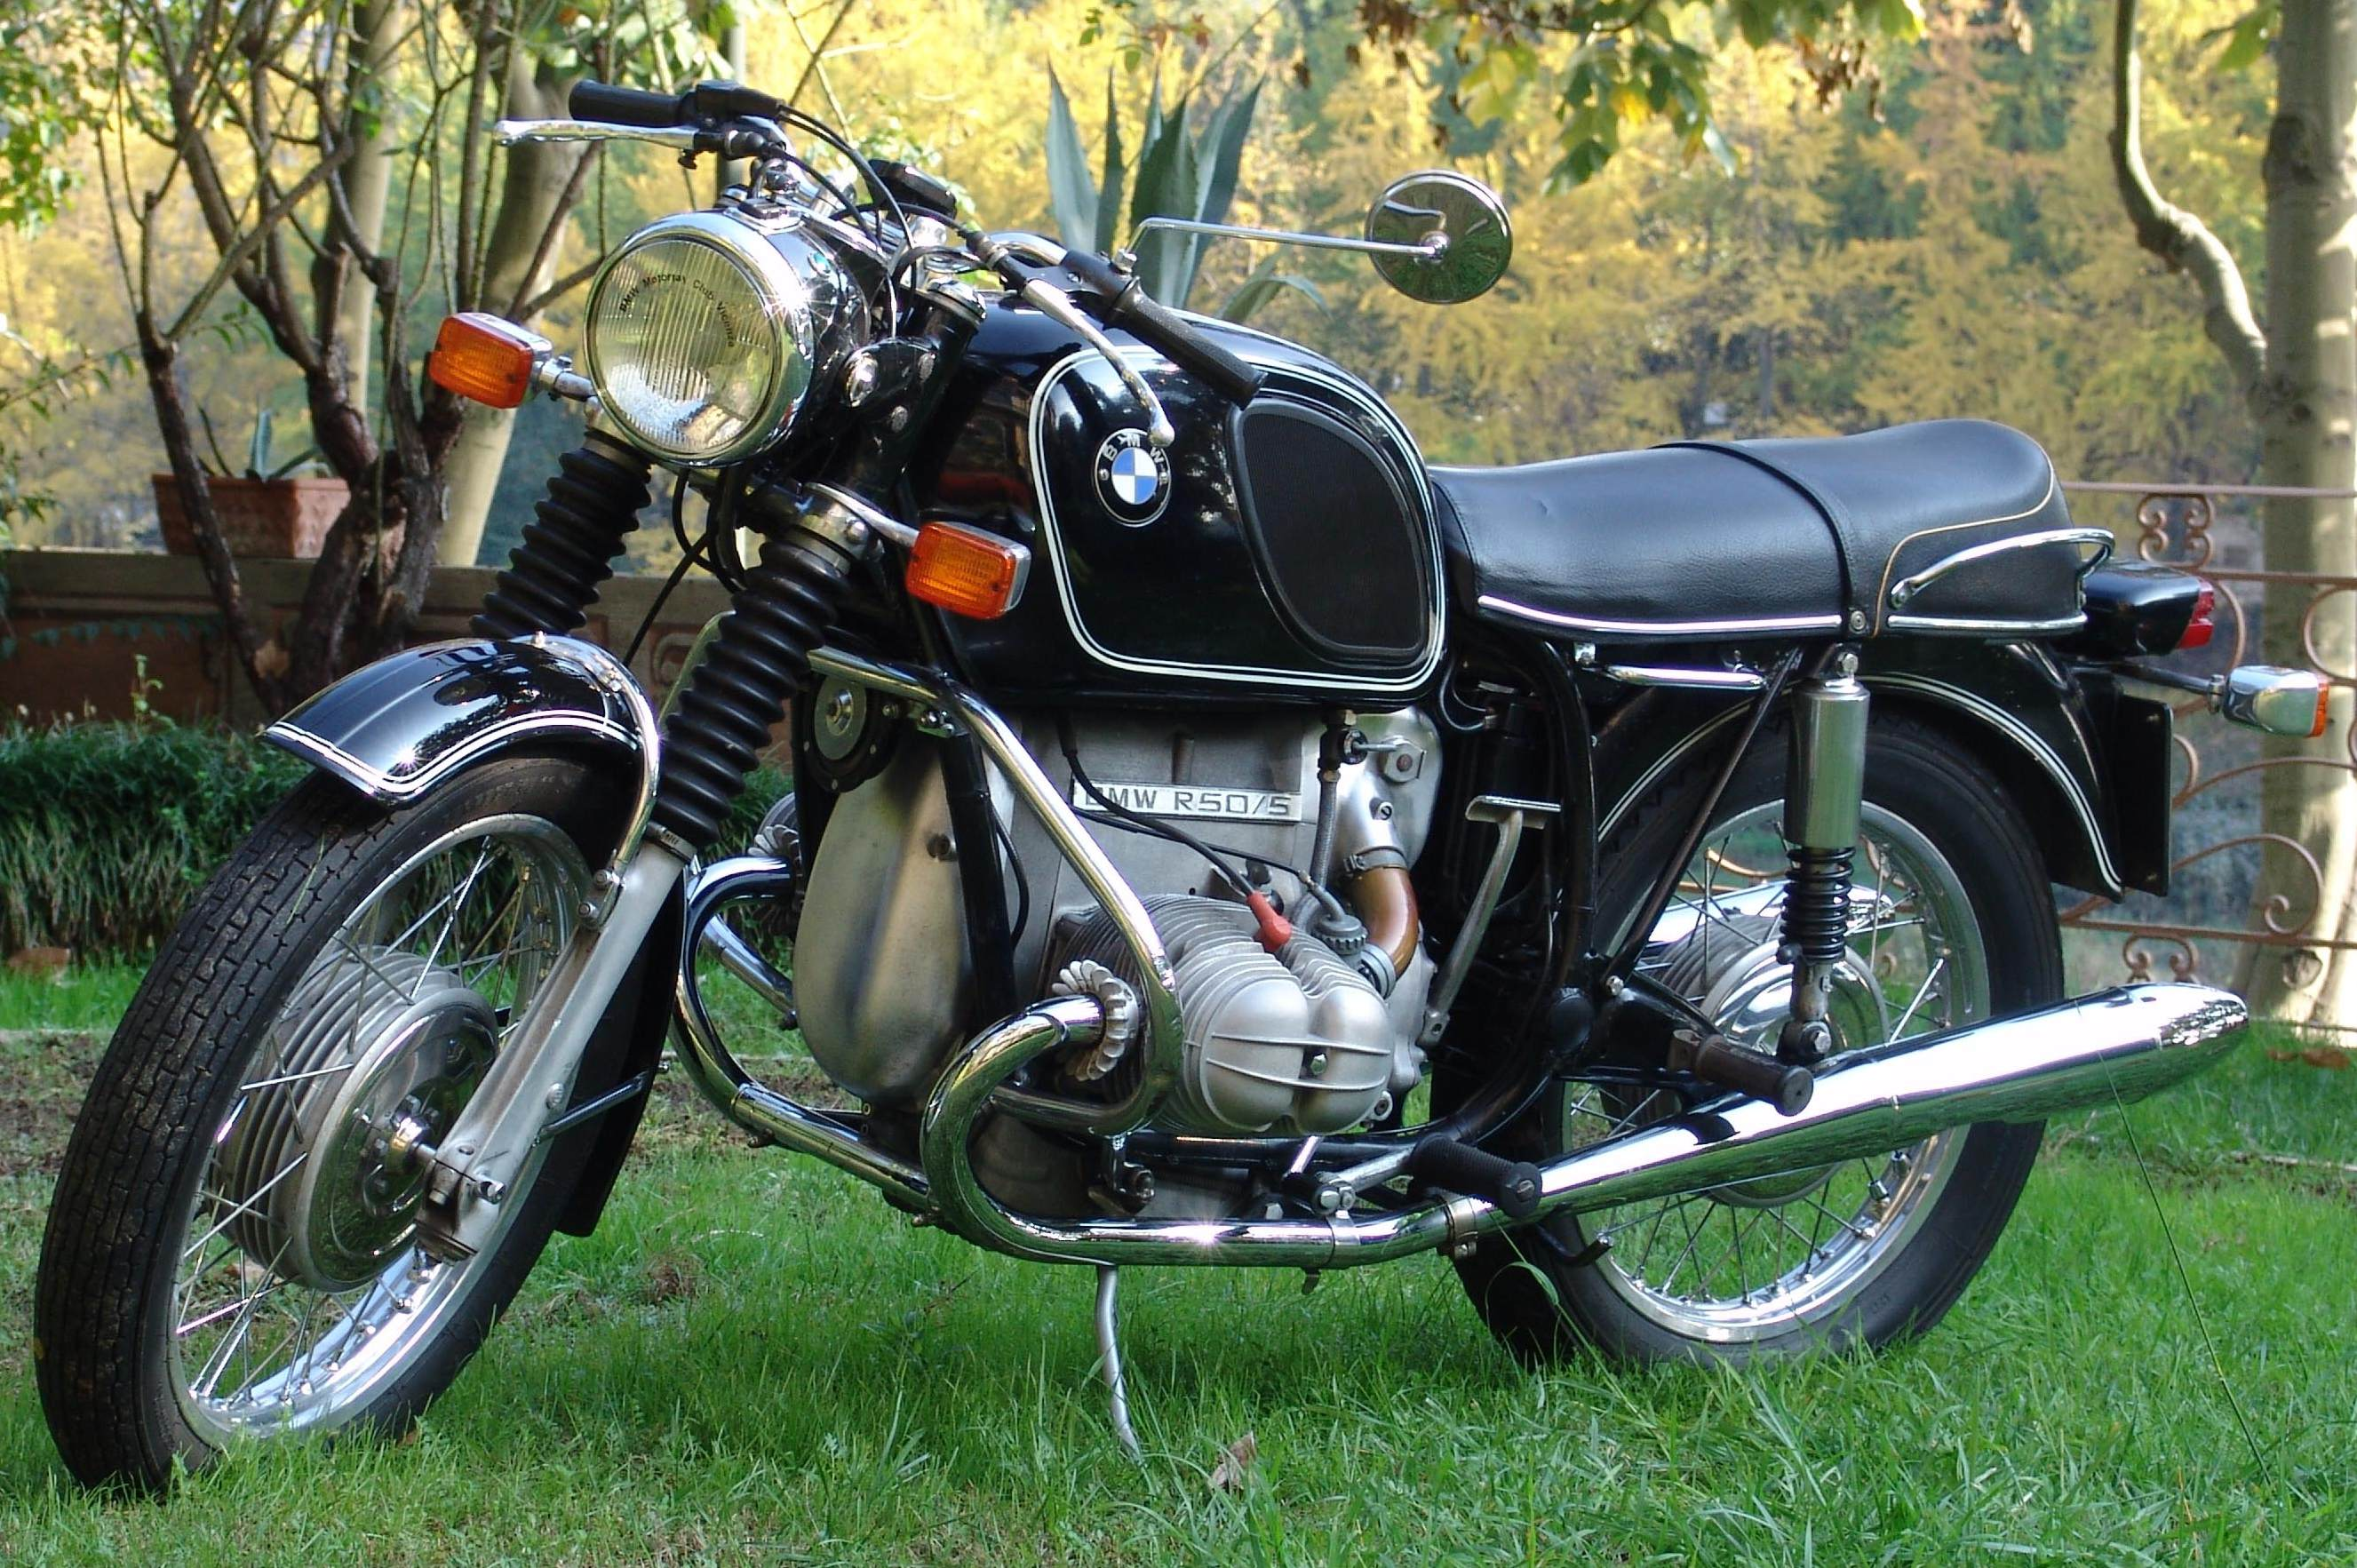 1970 bmw r50 5 pics specs and information. Black Bedroom Furniture Sets. Home Design Ideas